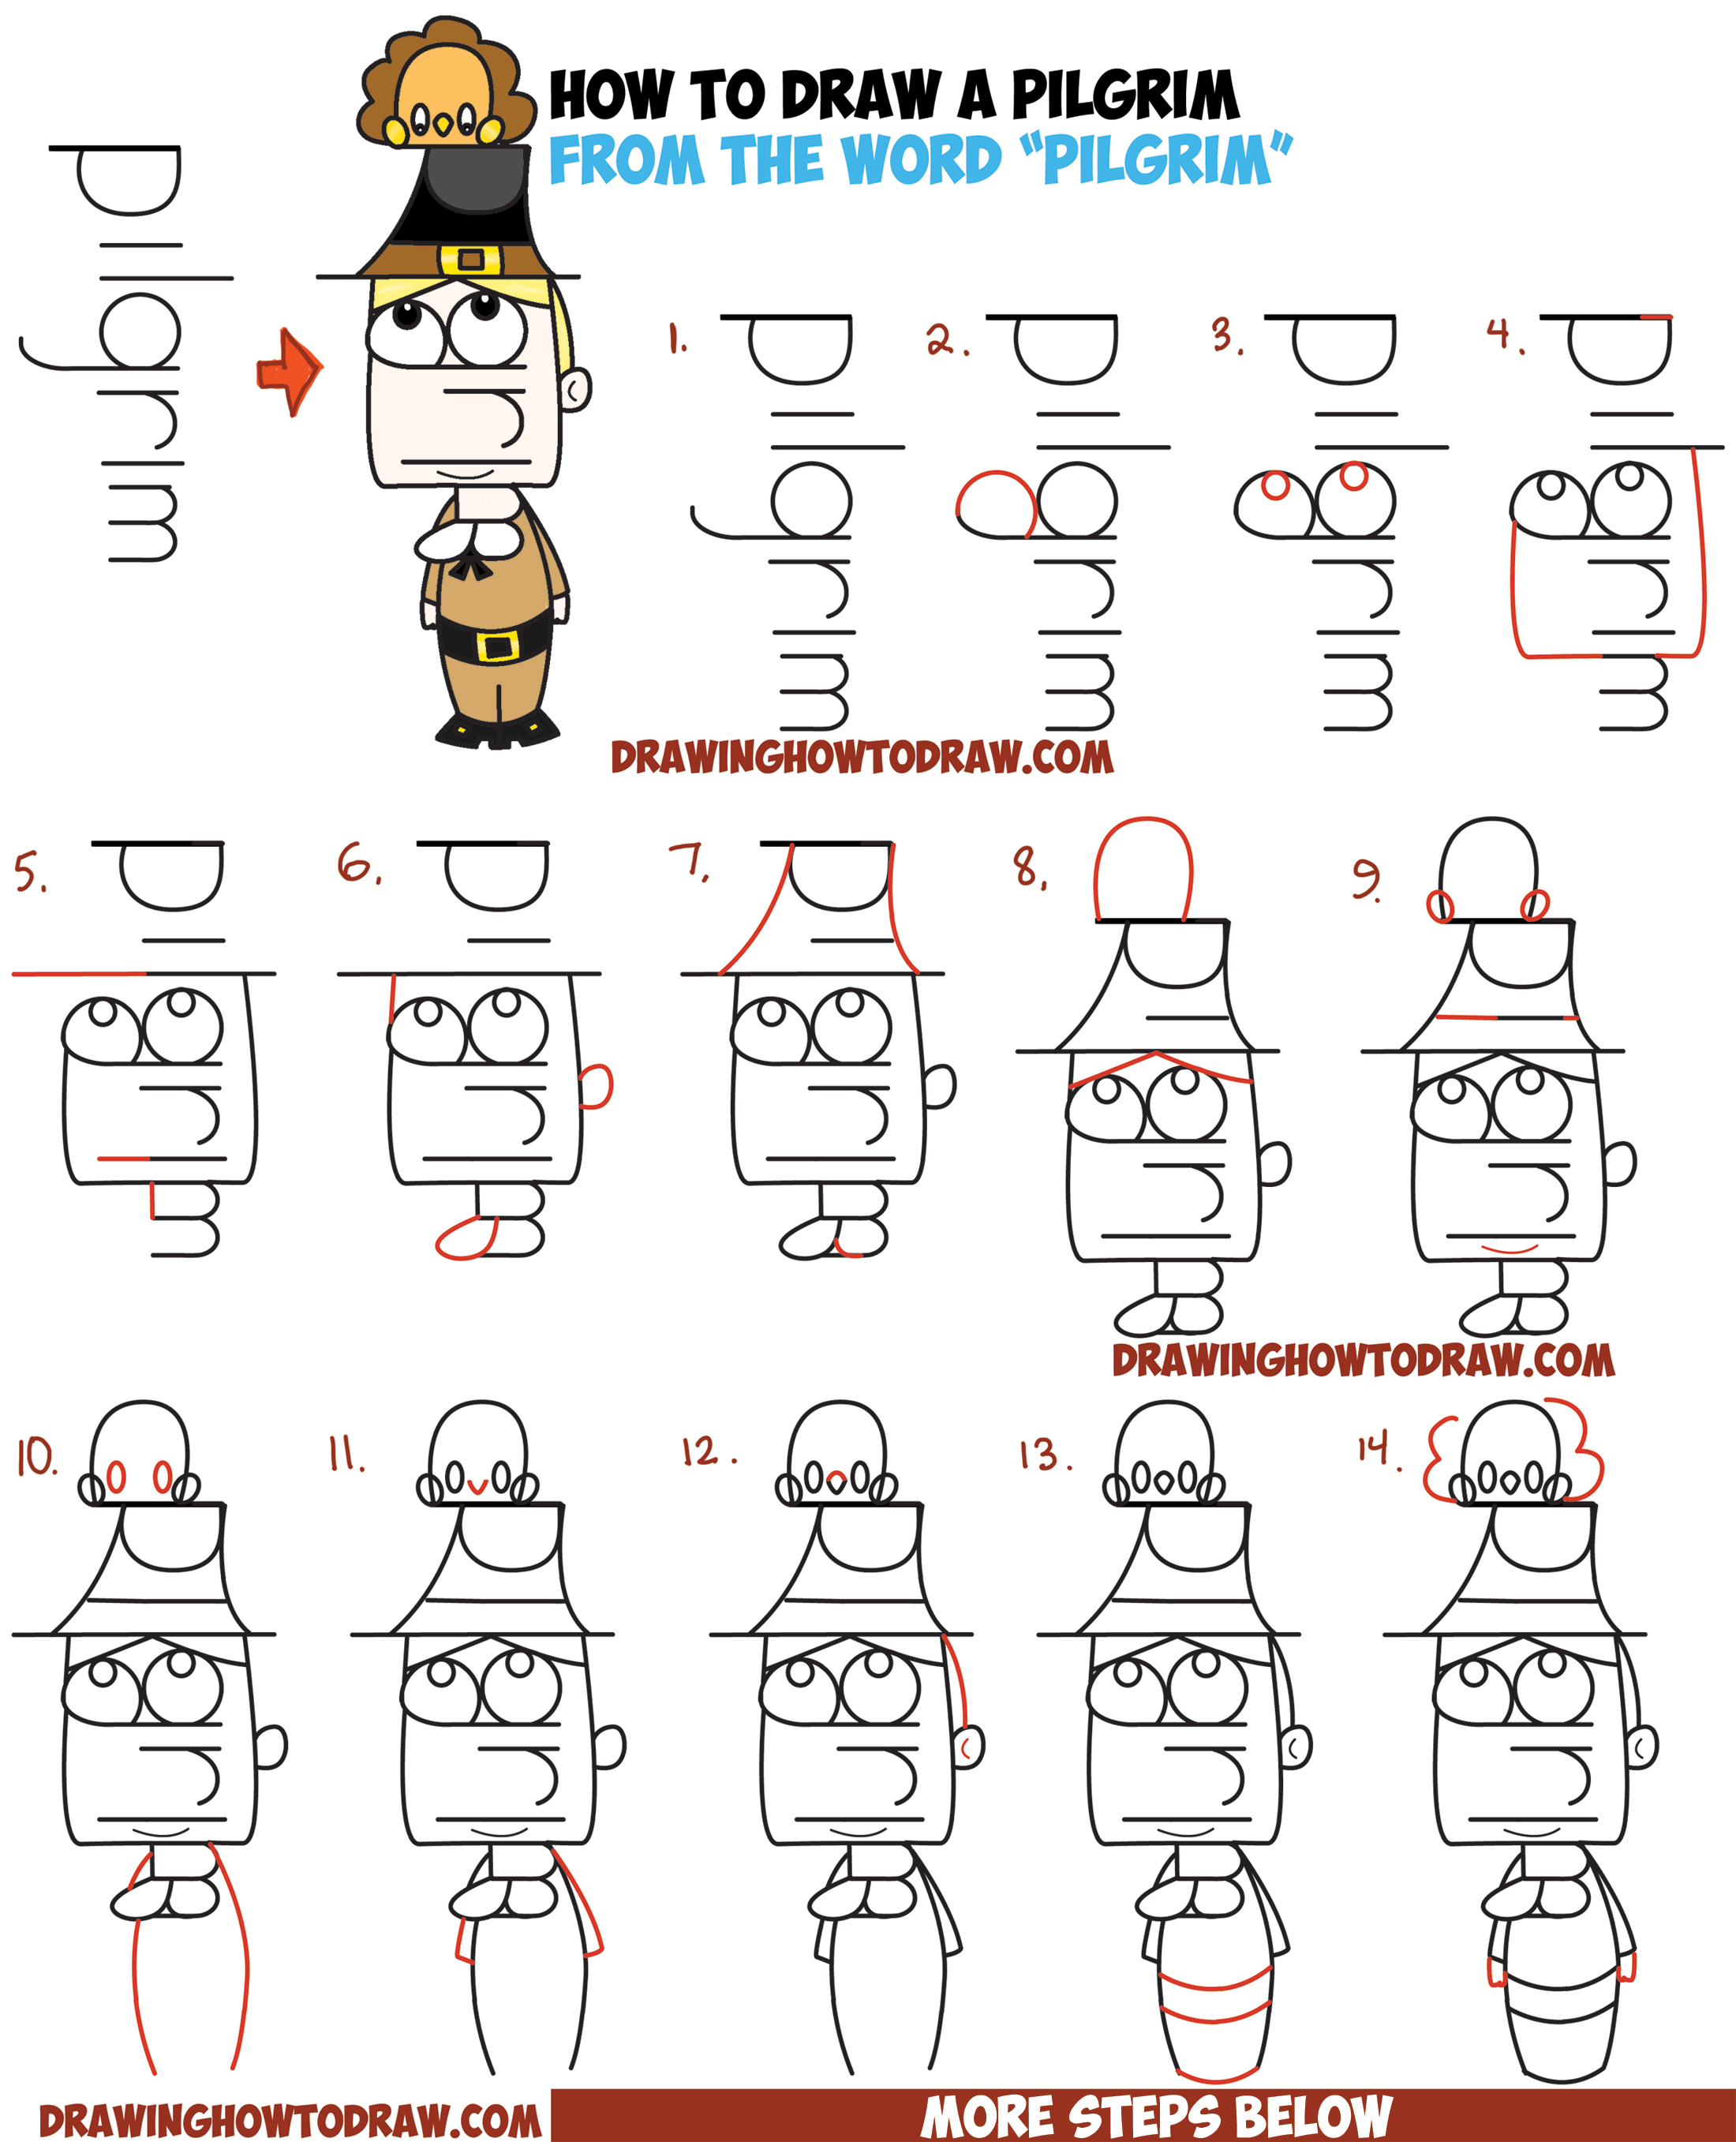 How to Draw a Cartoon Pilgrim from the Word (Word Toon) Easy Step by Step Drawing Tutorial for Kids on Thanksgiving